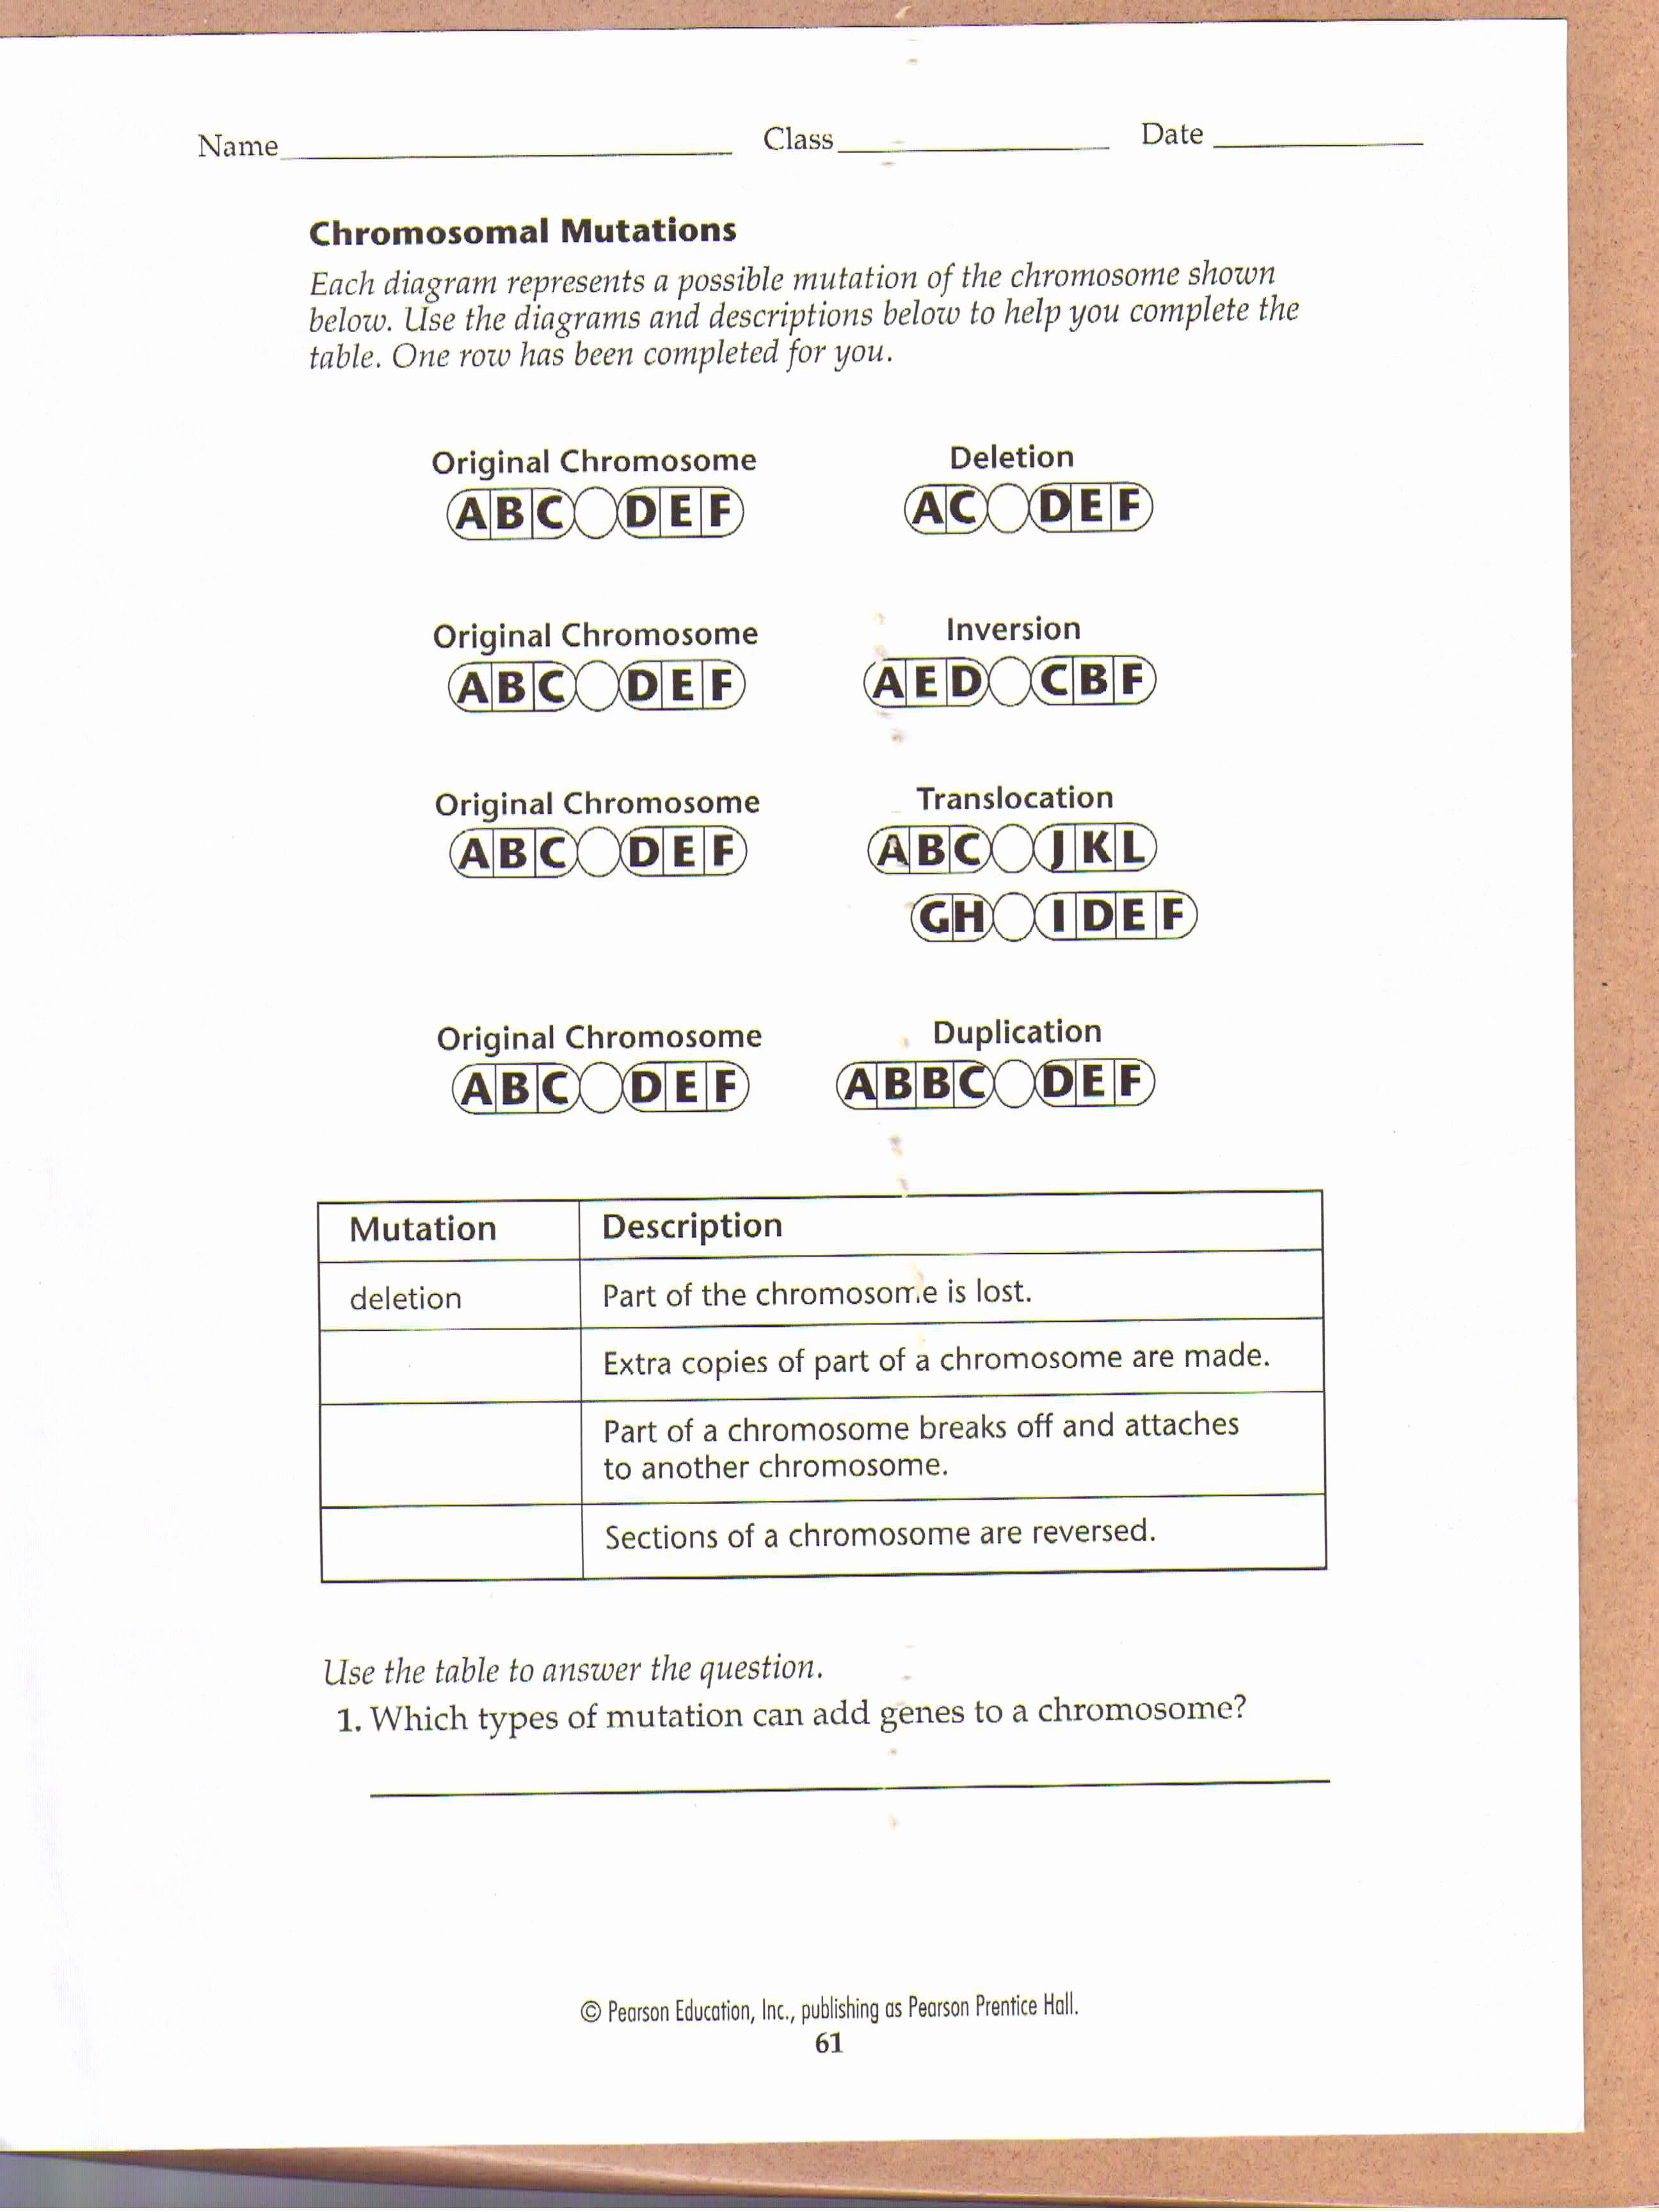 Genetic Mutations Worksheet Answer Key Best Of Chromosomal Mutations Worksheet Education